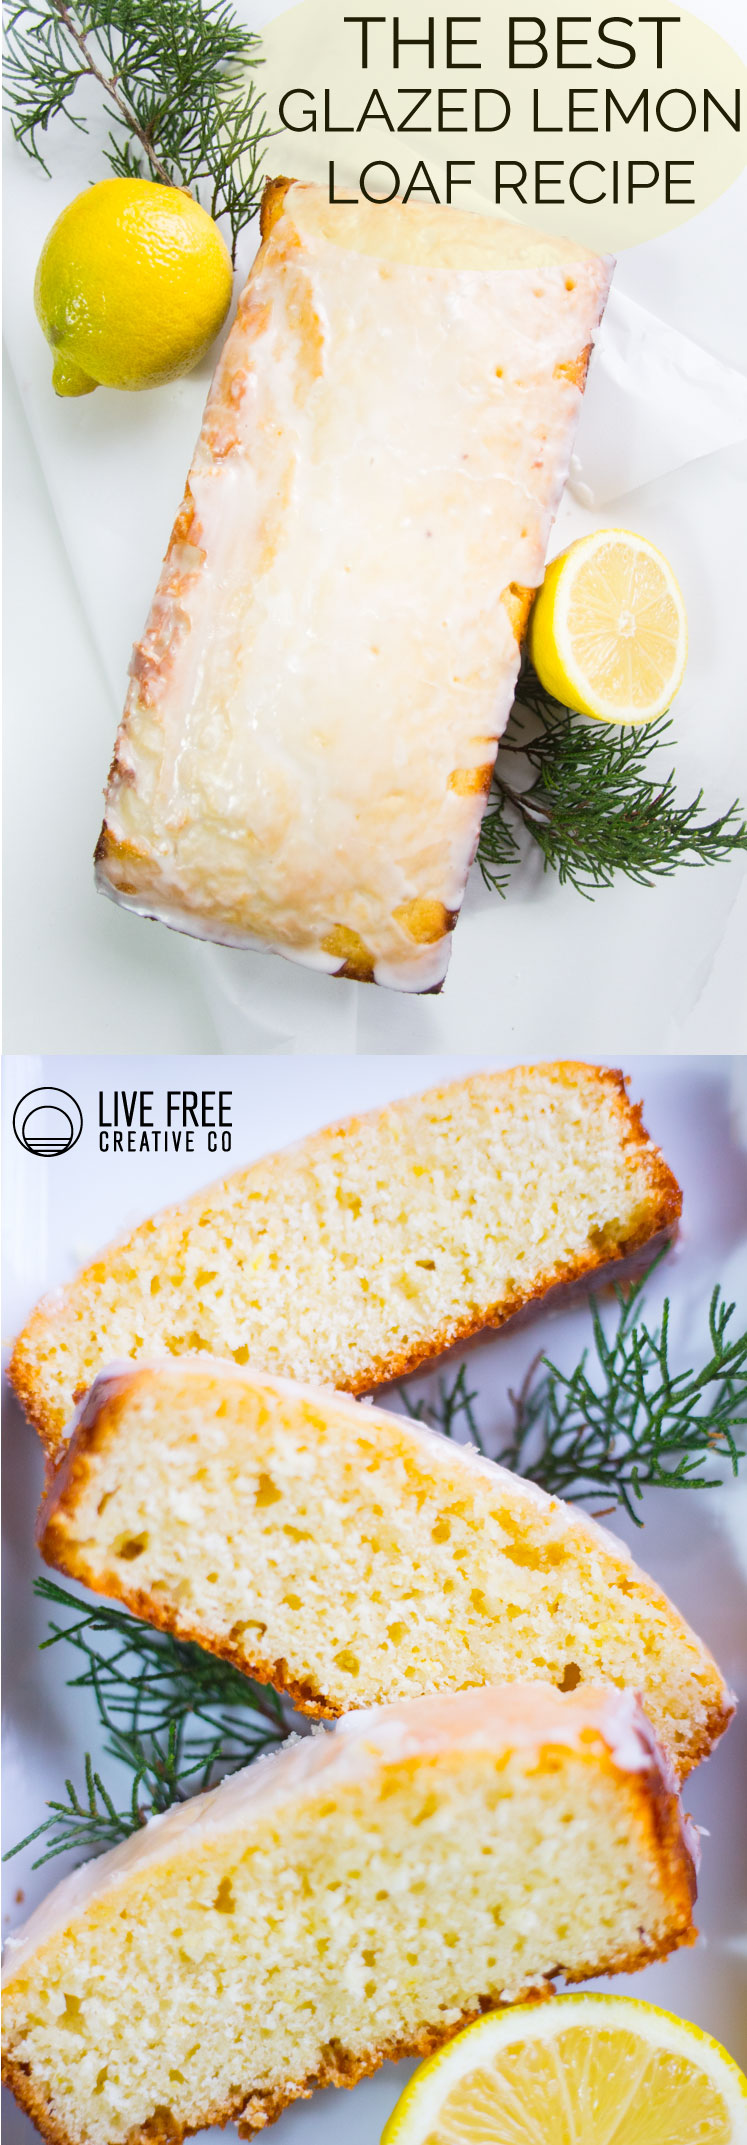 The Best Glazed Lemon Loaf Recipe | Live Free Creative Co